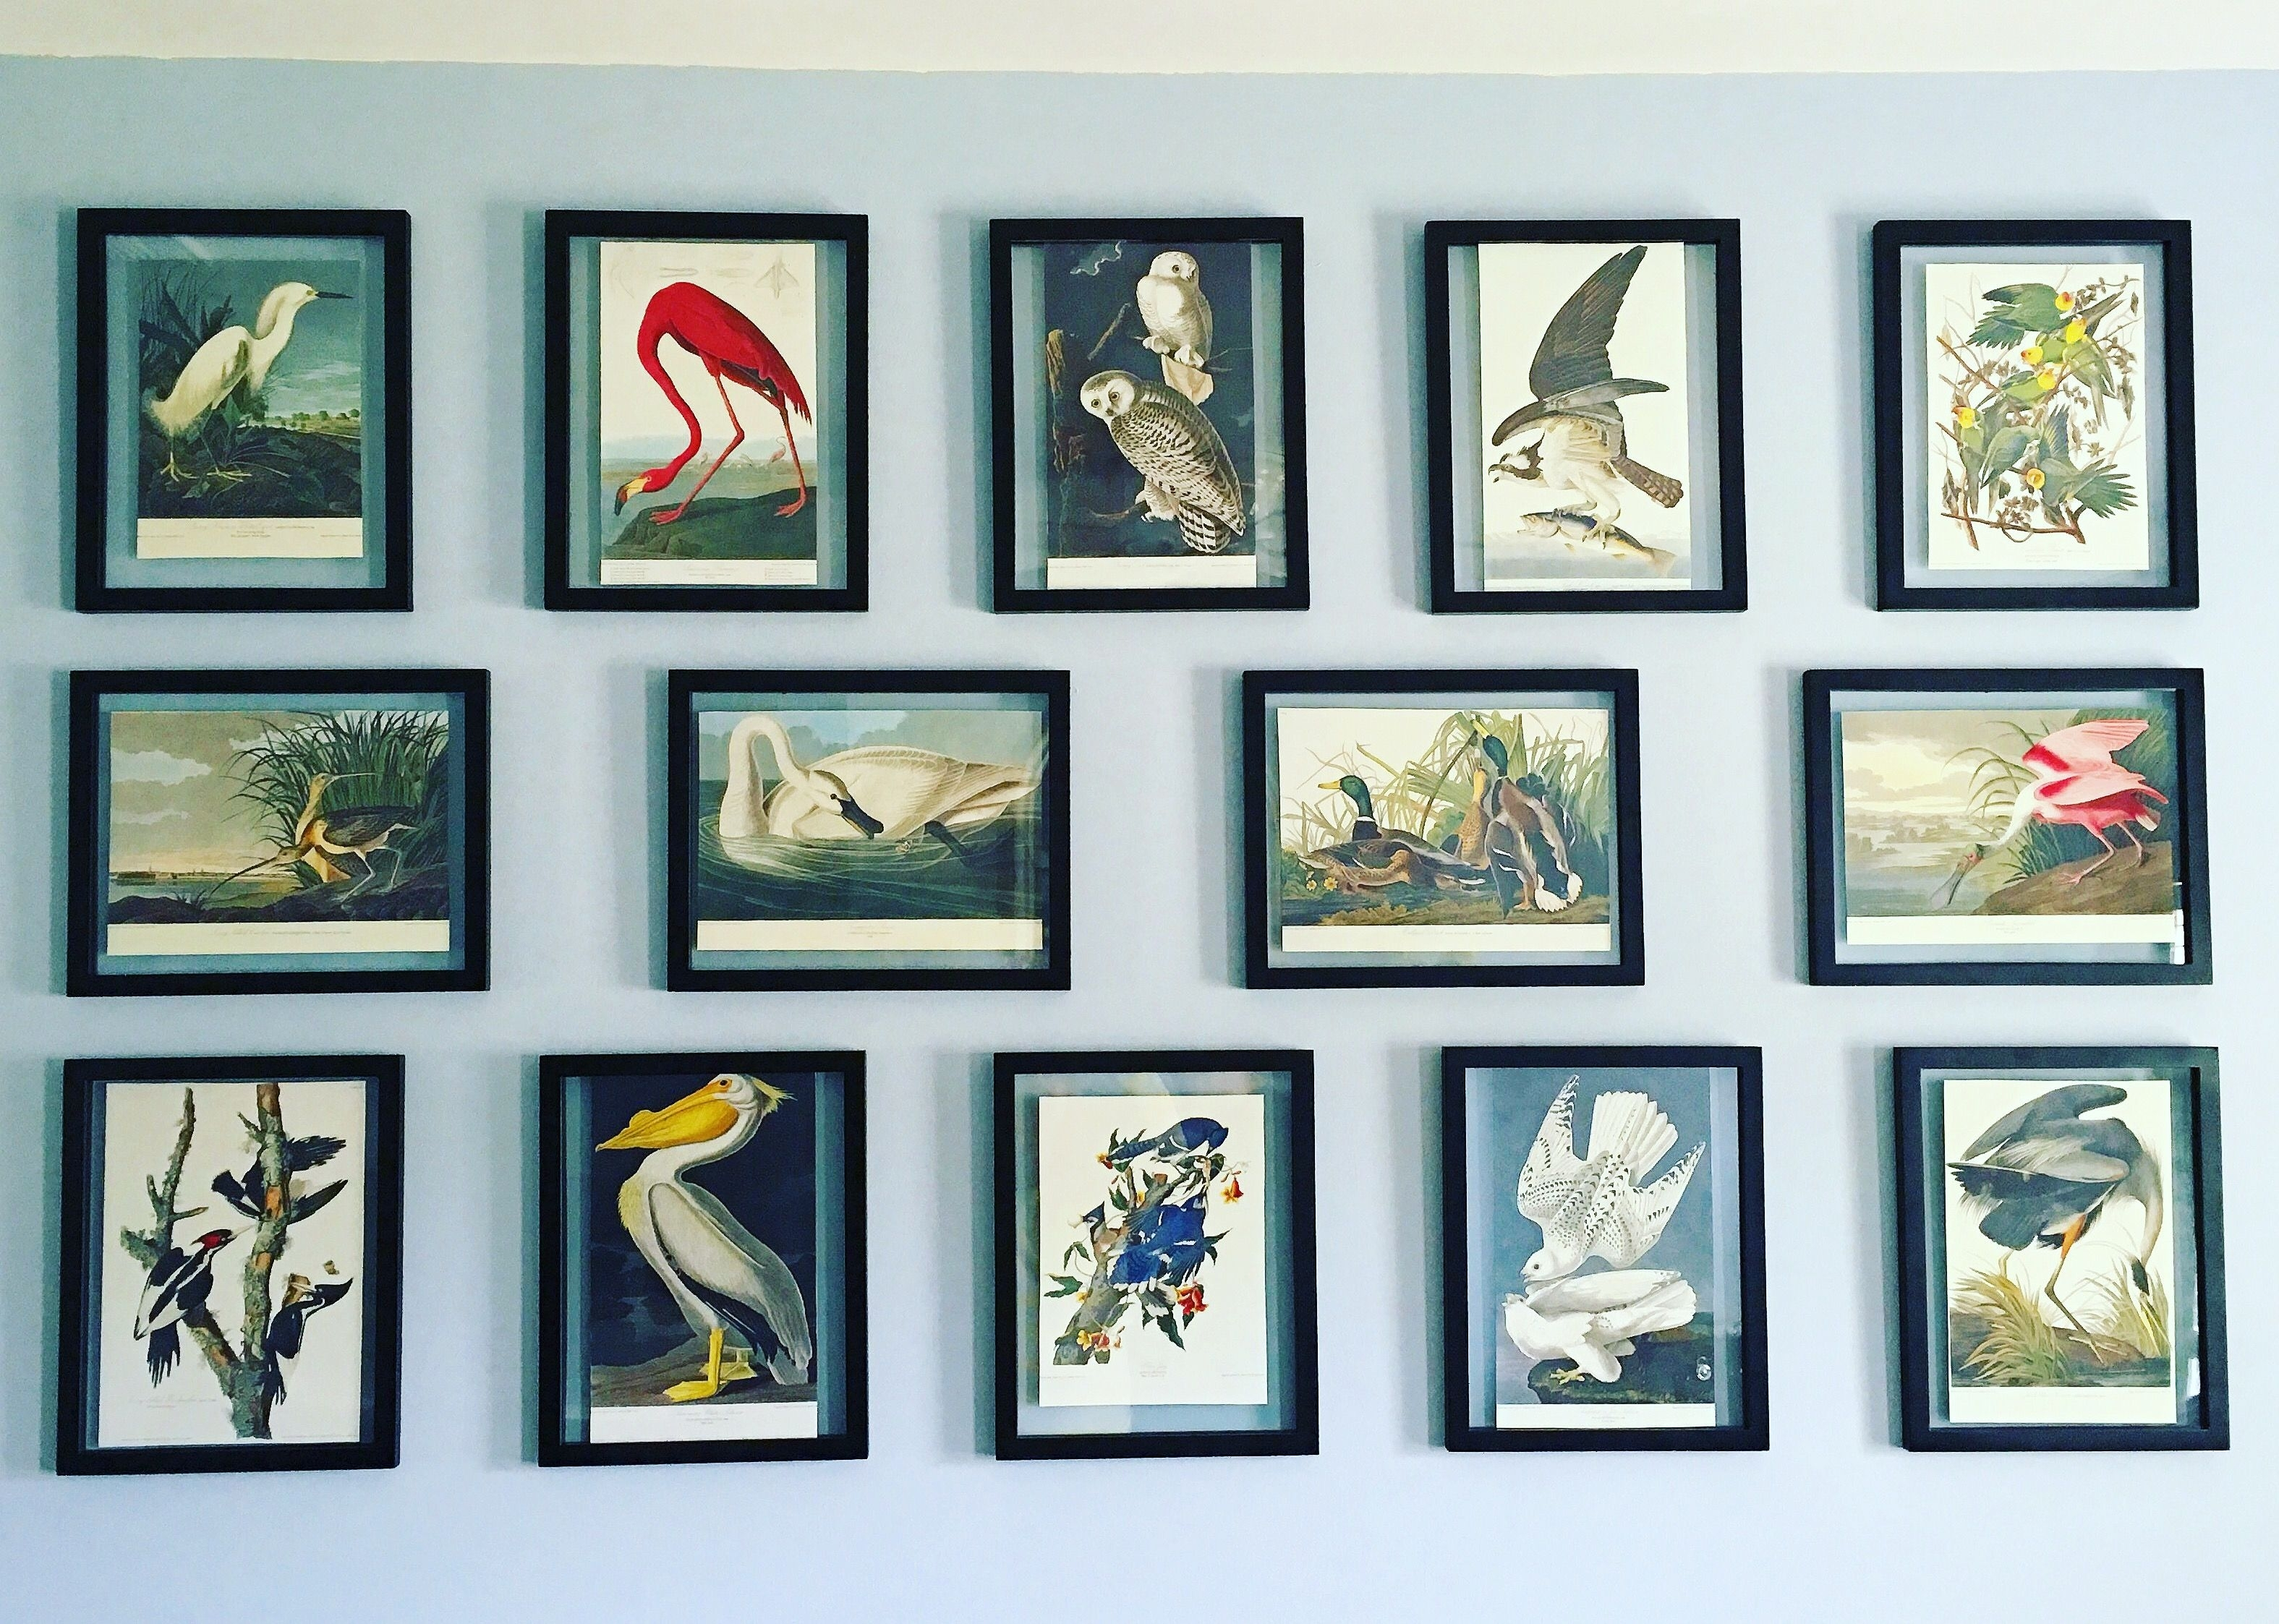 Gallery Wall: Framed Audubon Bird Prints | Dream Decorating With Regard To Most Recently Released Birds Framed Art Prints (View 8 of 15)